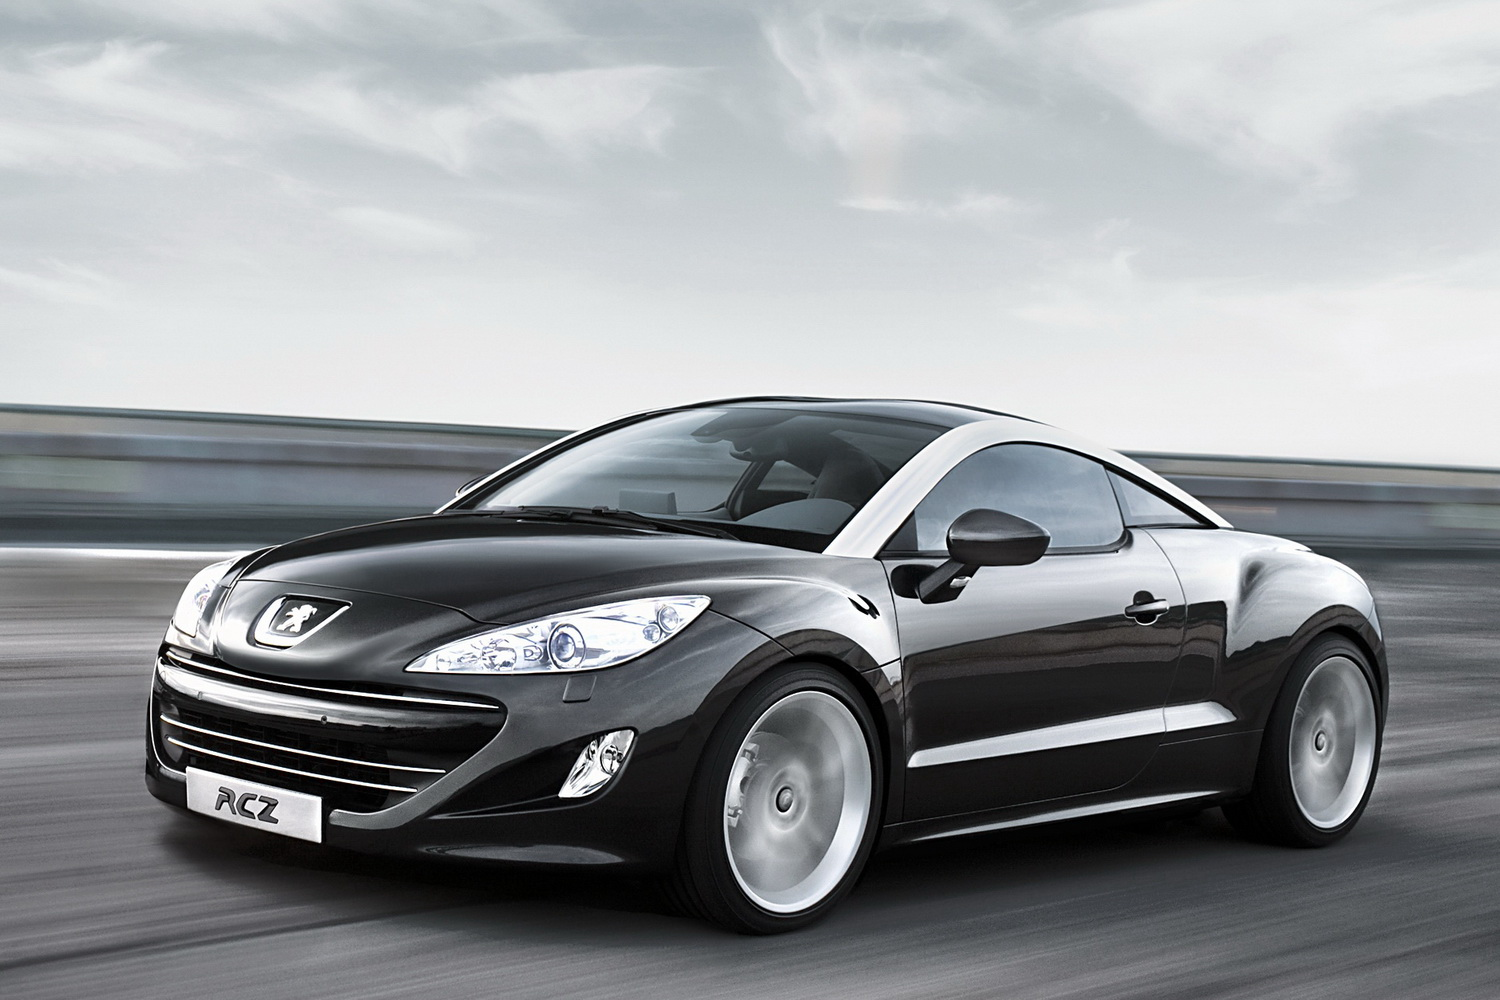 peugeot rcz le lion sort les griffes plan te. Black Bedroom Furniture Sets. Home Design Ideas